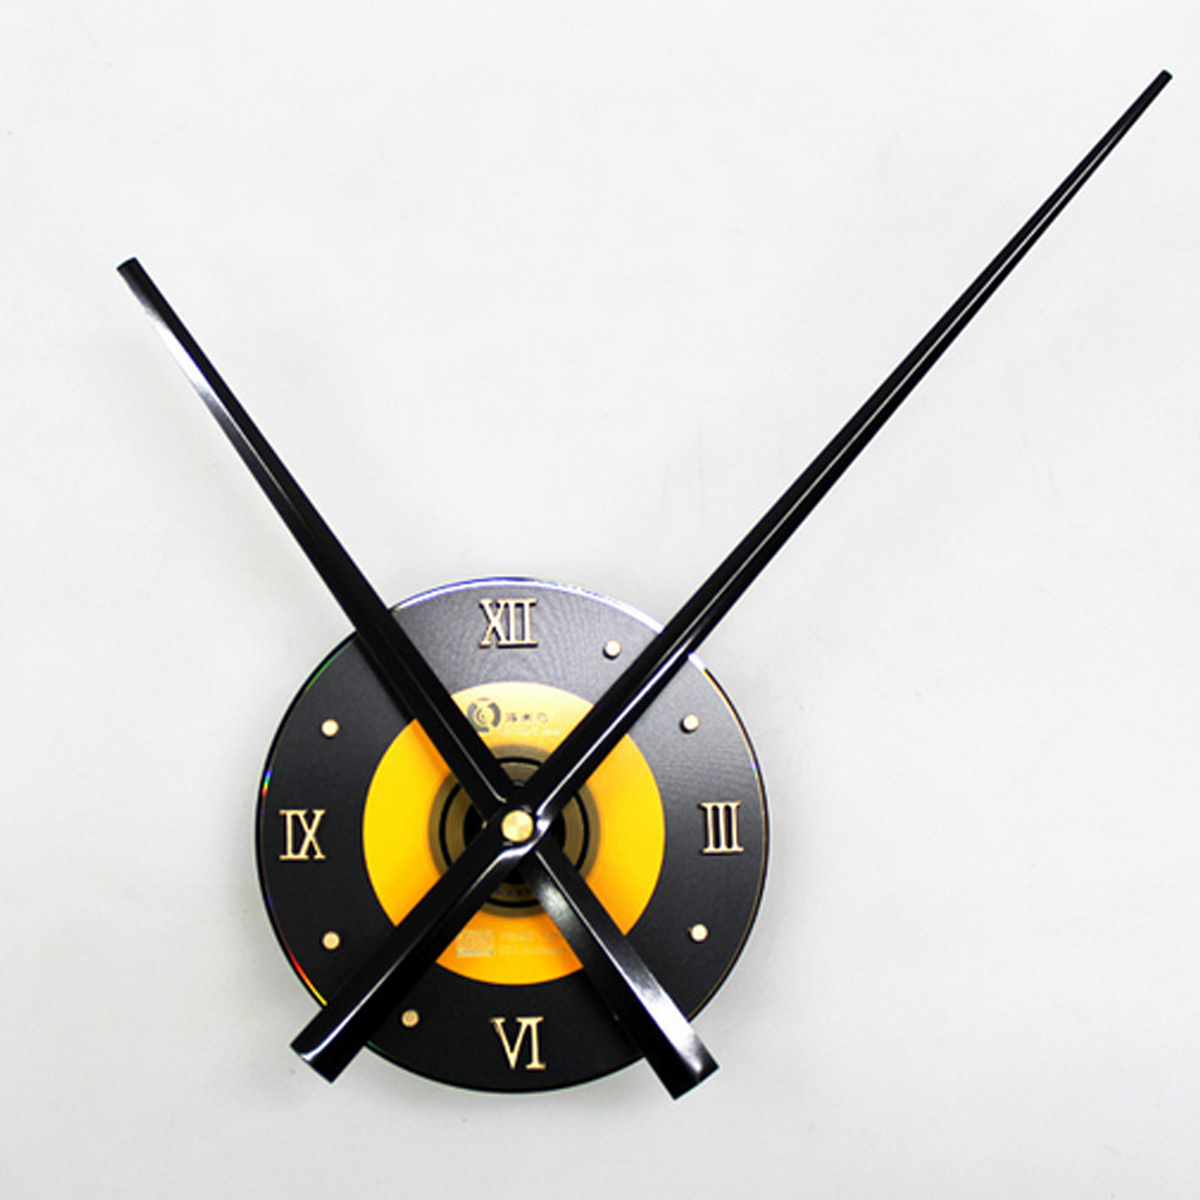 Large Pointer Mute Wall Clock + Minute/Hour Hand Kit Creative Home Decor